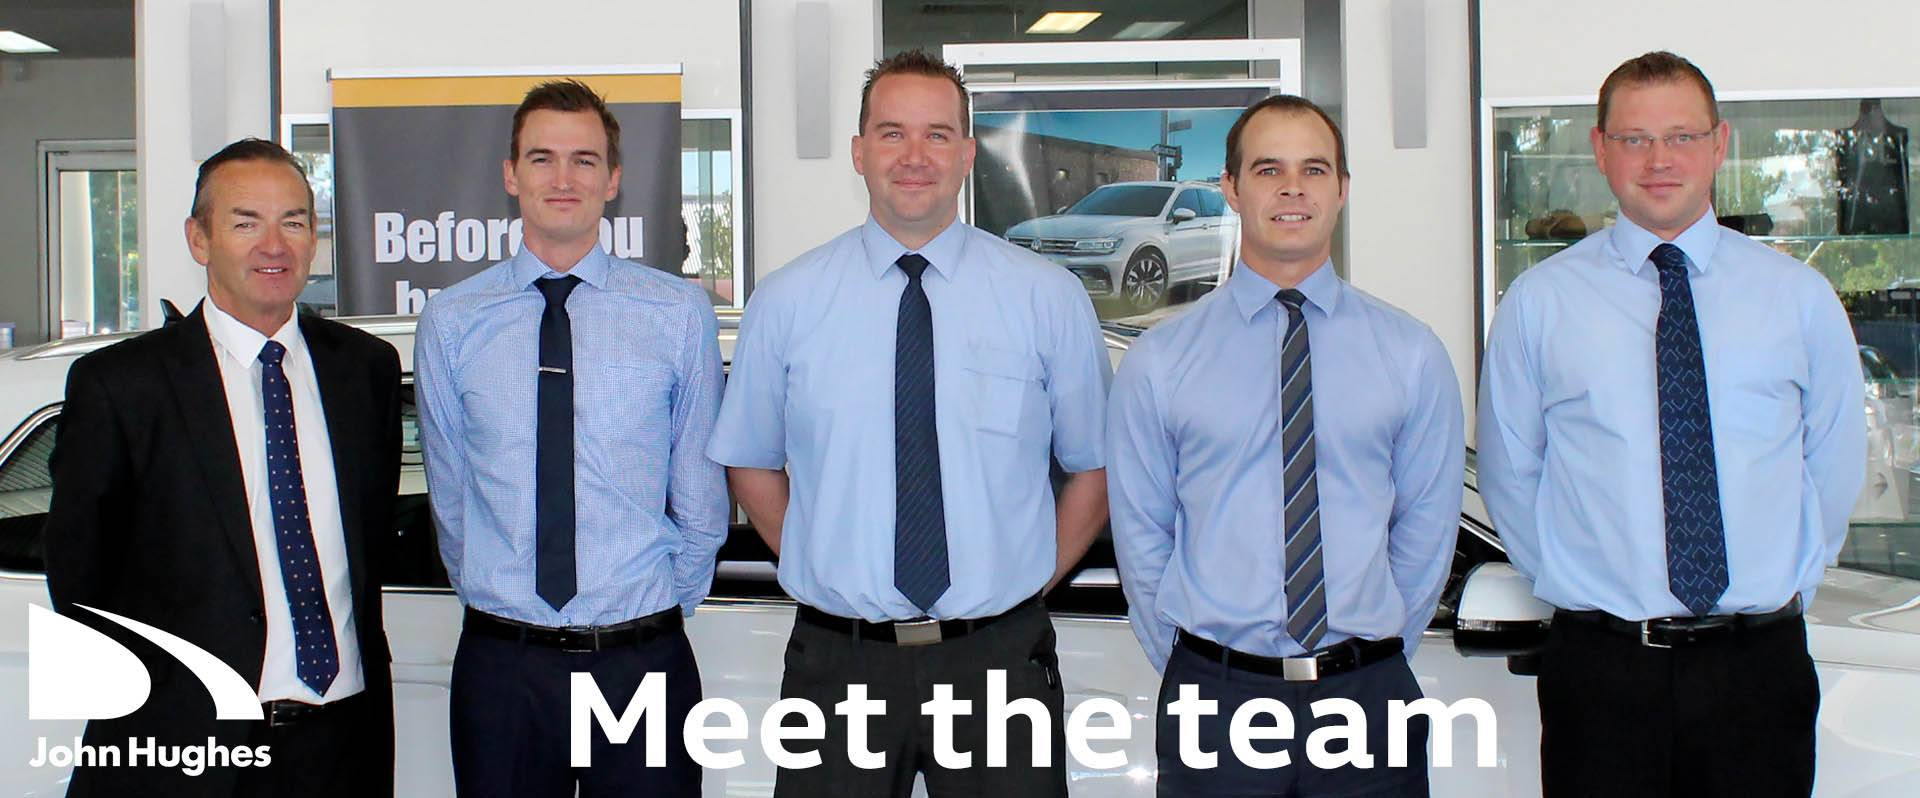 John Hughes Volkswagen - Meet The Team